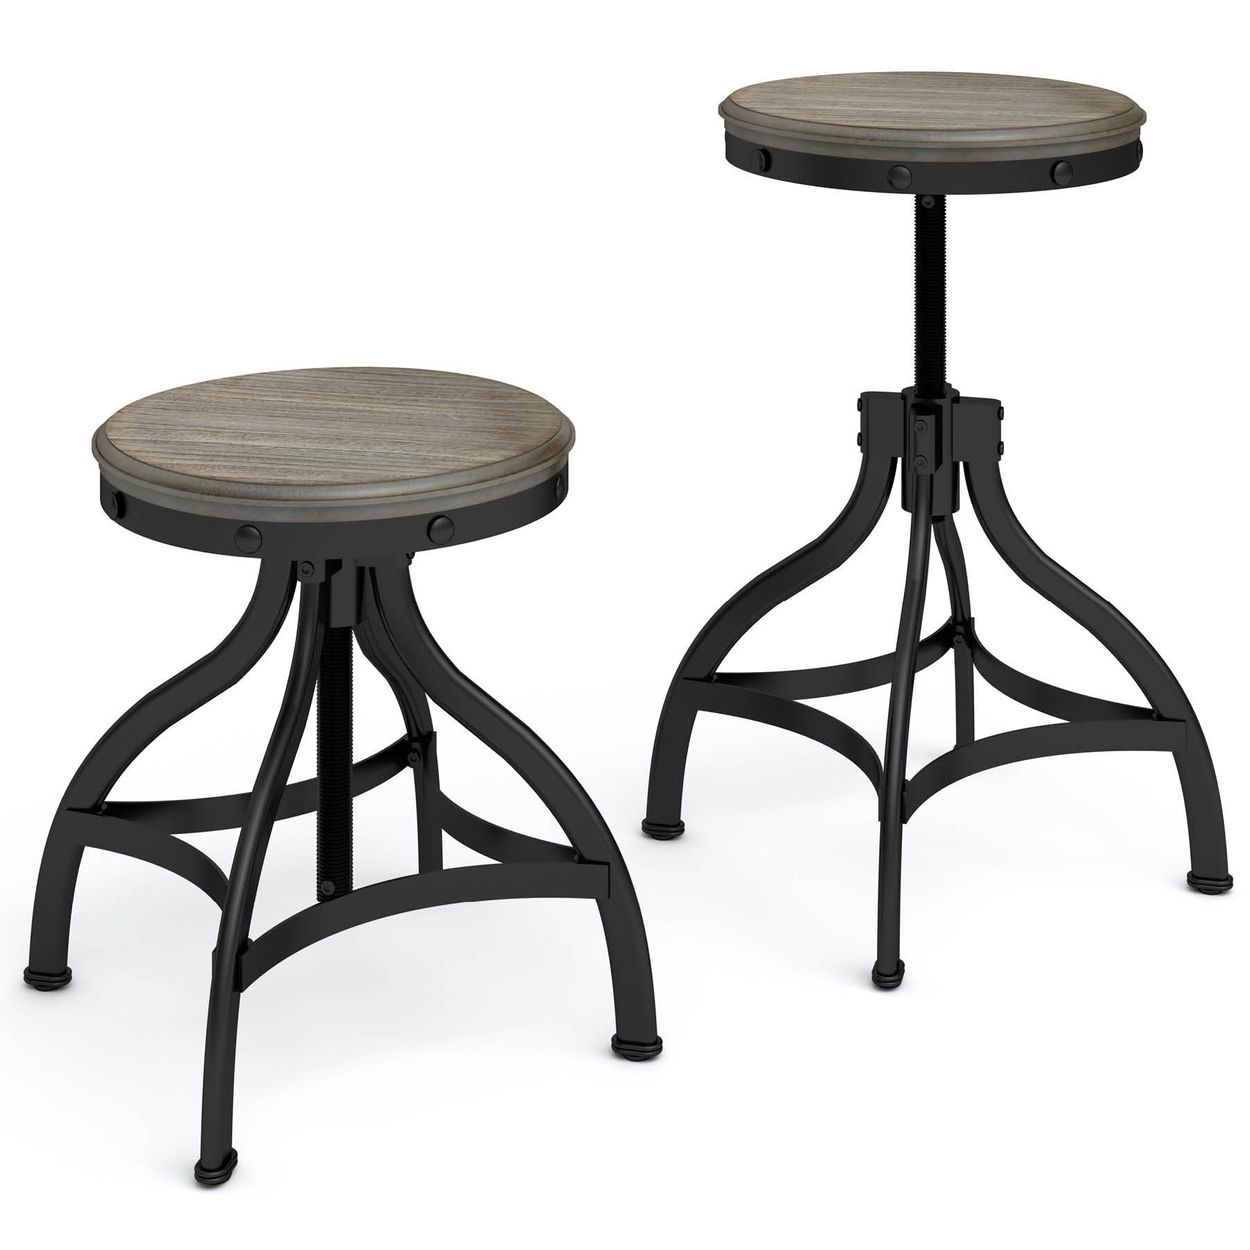 Magnificent Set Of 2 Brown Adjustable Stool Beatyapartments Chair Design Images Beatyapartmentscom